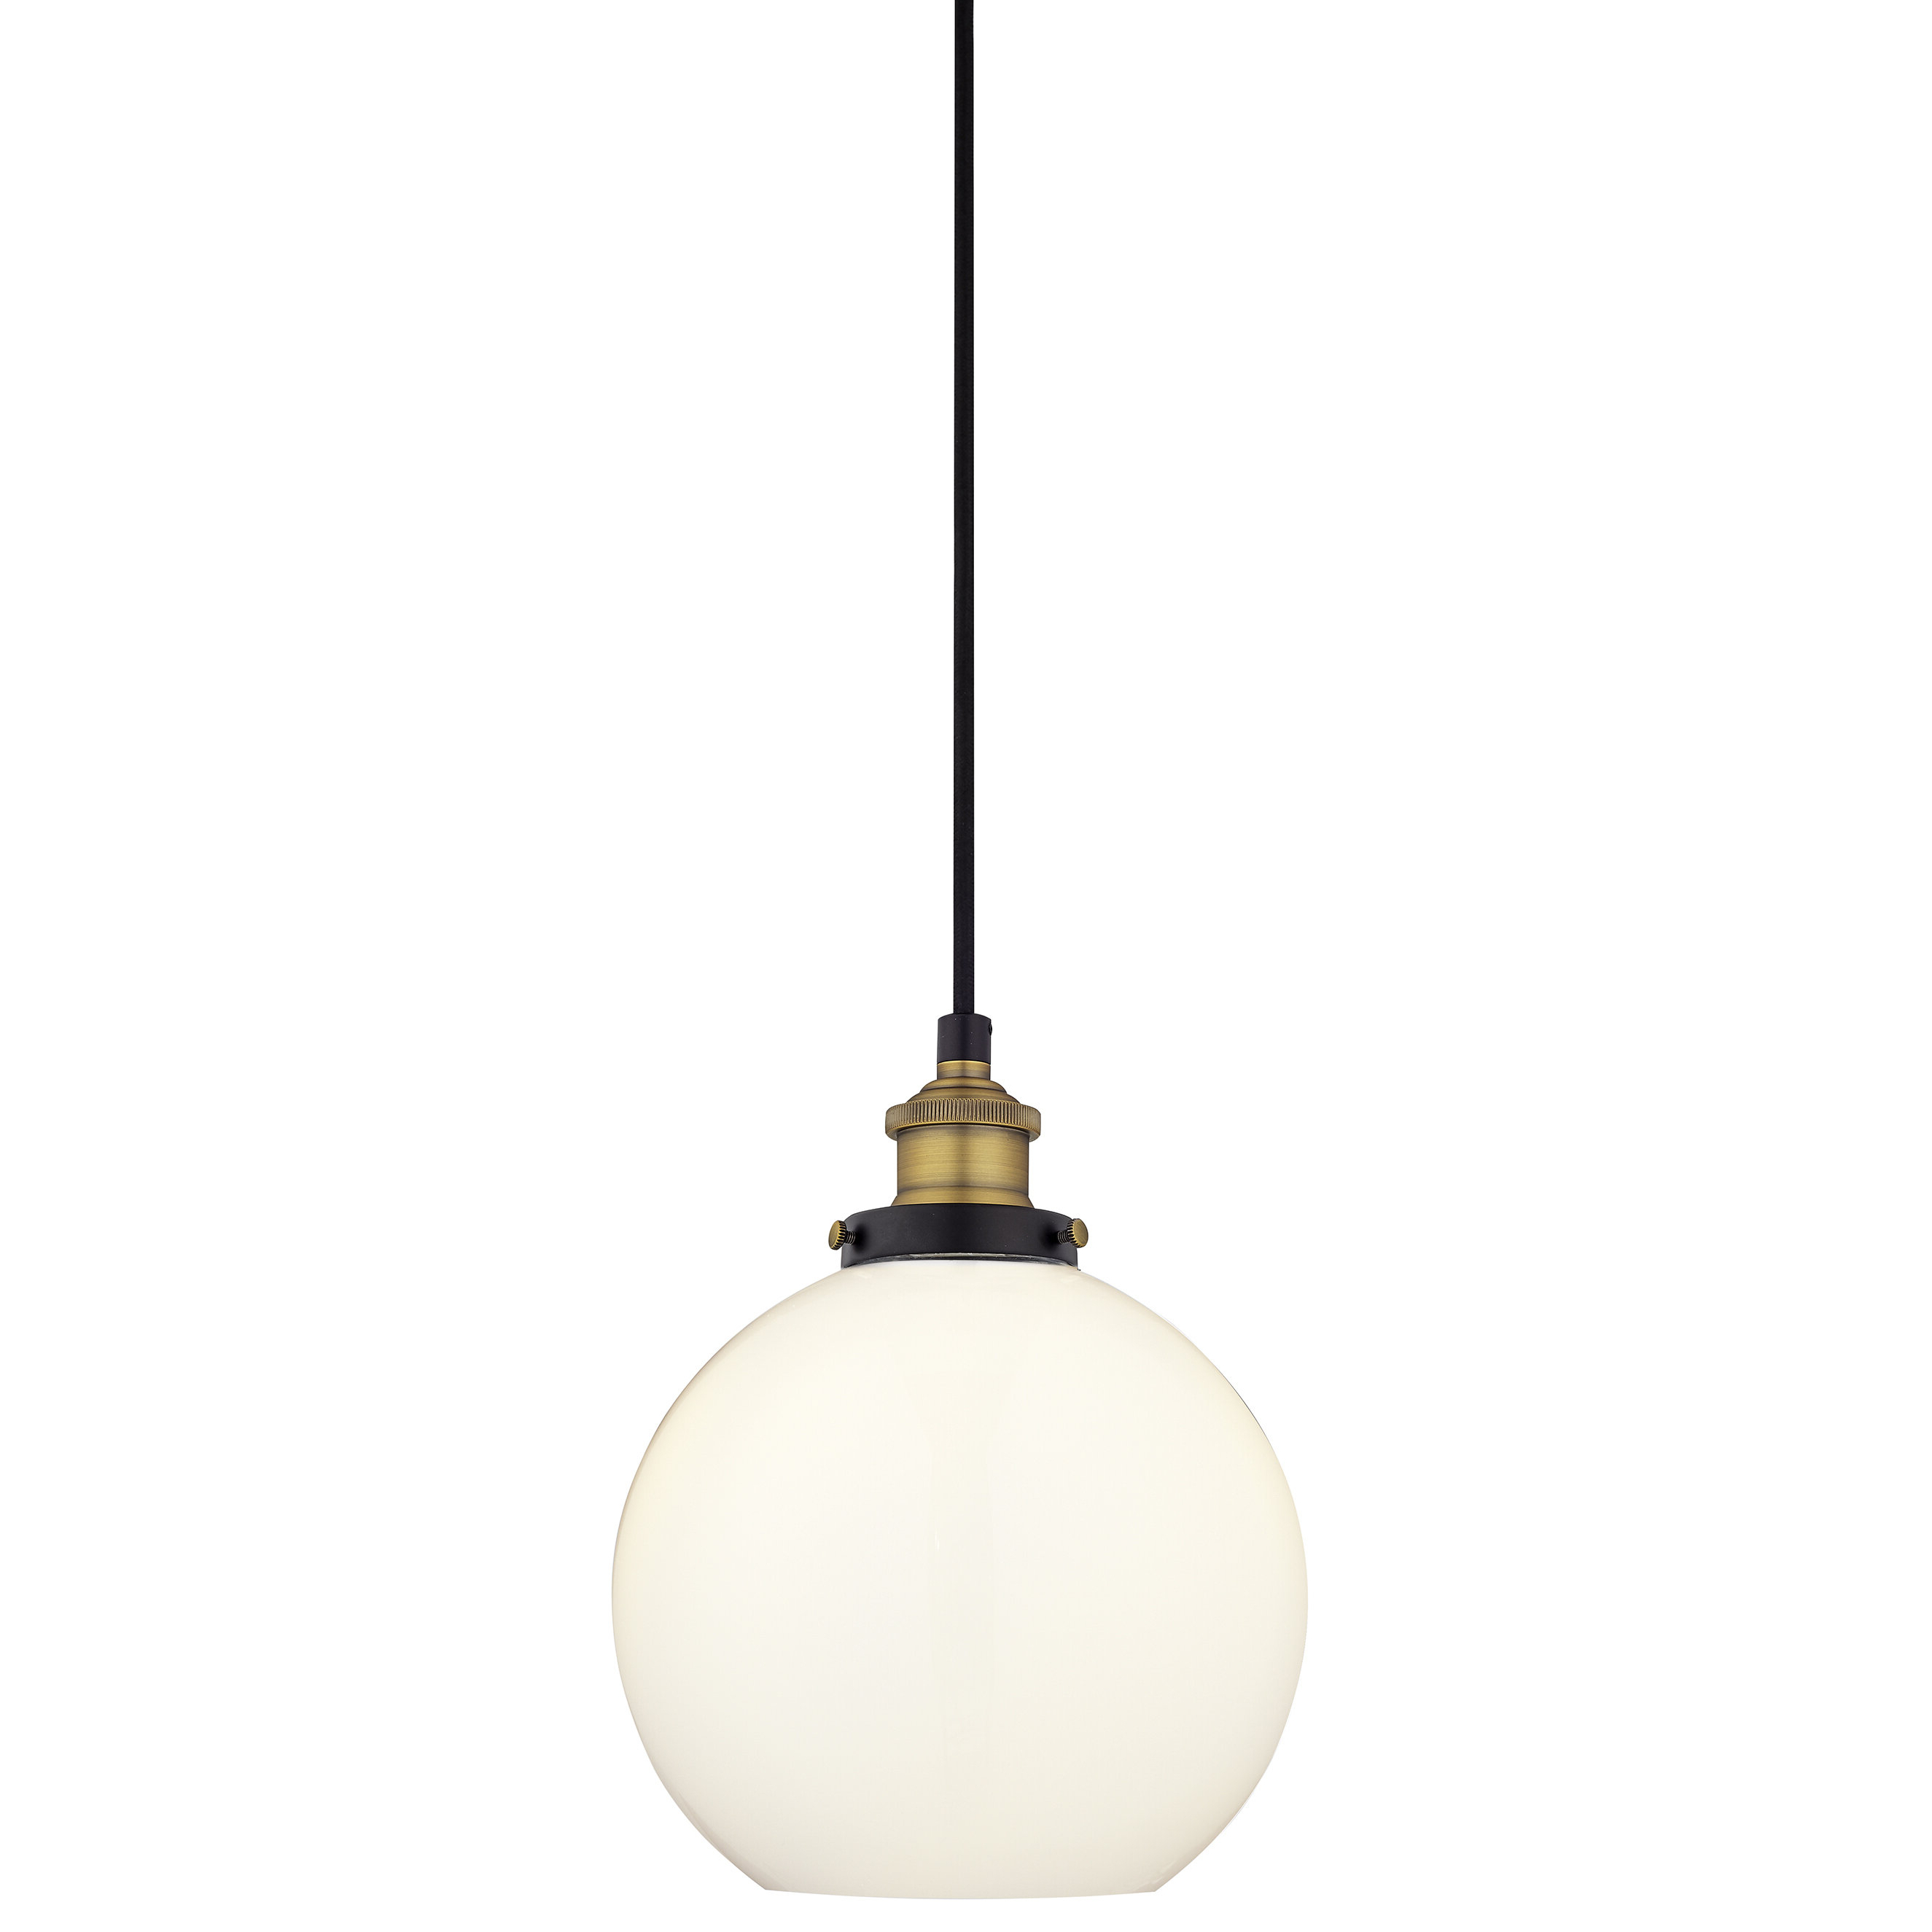 Dunneback 1 Light Single Globe Pendant In Recent Bundy 1 Light Single Globe Pendants (View 9 of 20)